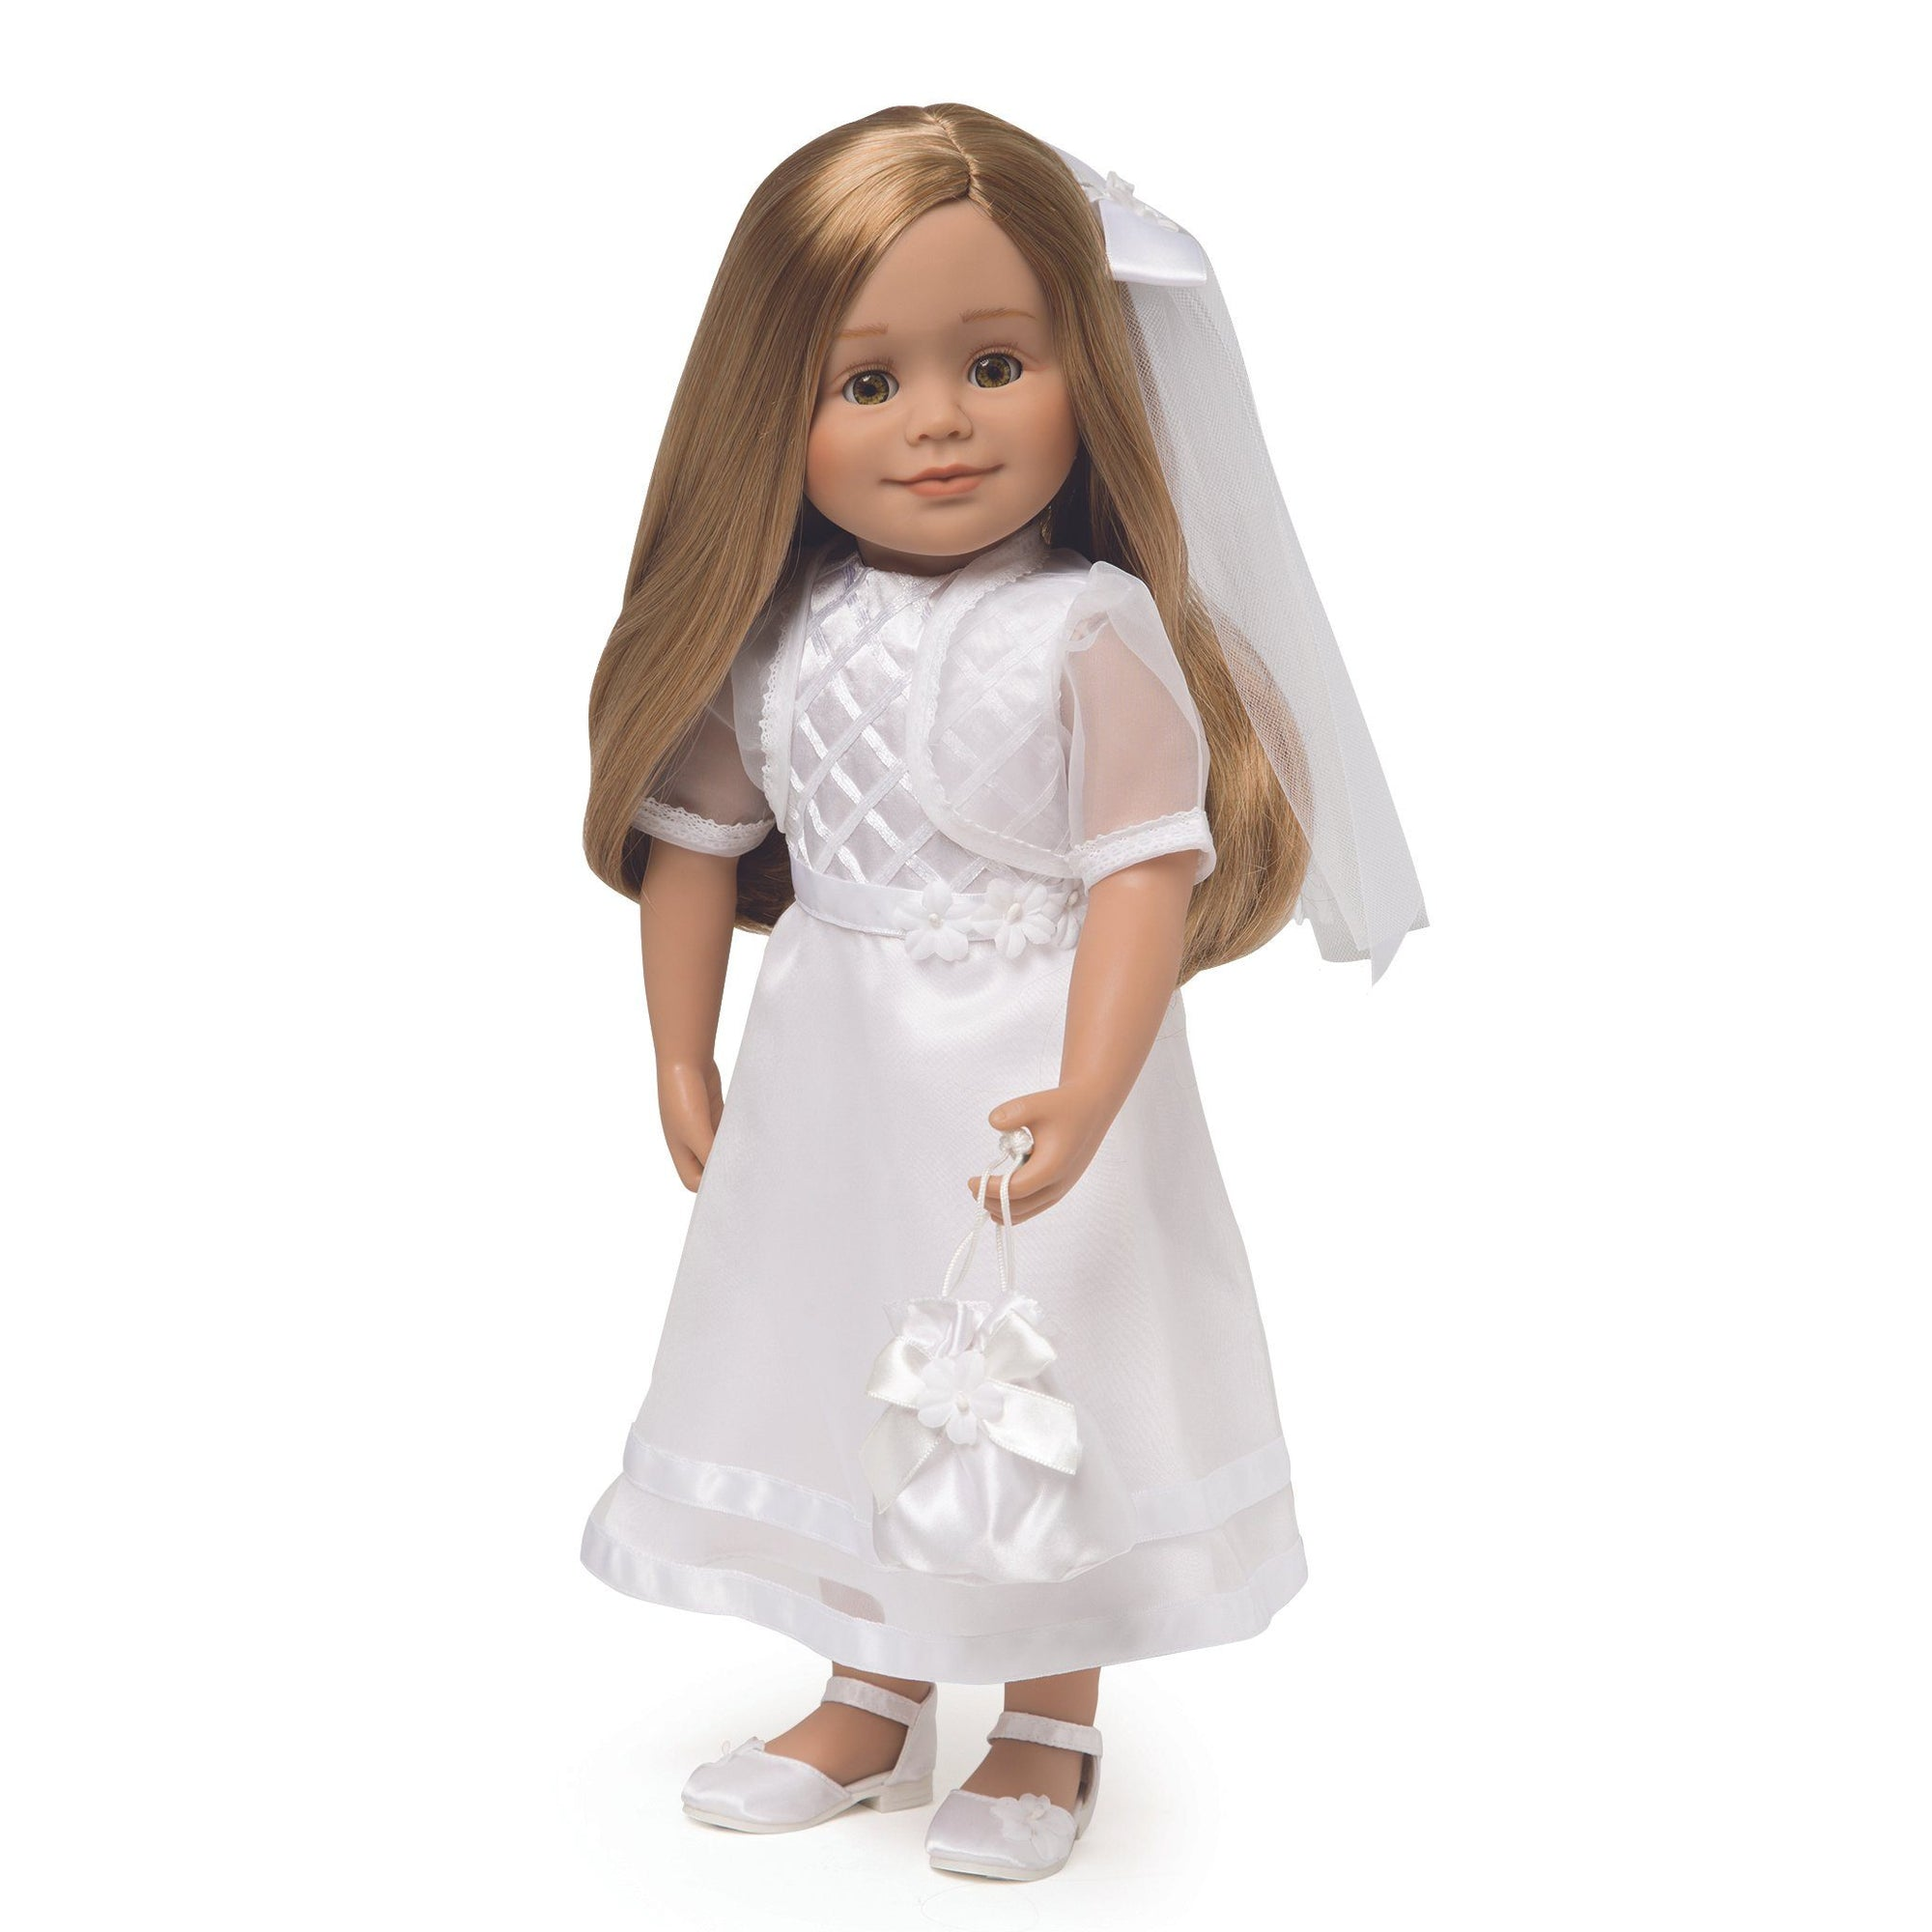 Special Occasion white organza dress, hair barrette with detachable veil, bolero jacket, socks, undies and satin drawstring purse fits all 18 inch dolls.